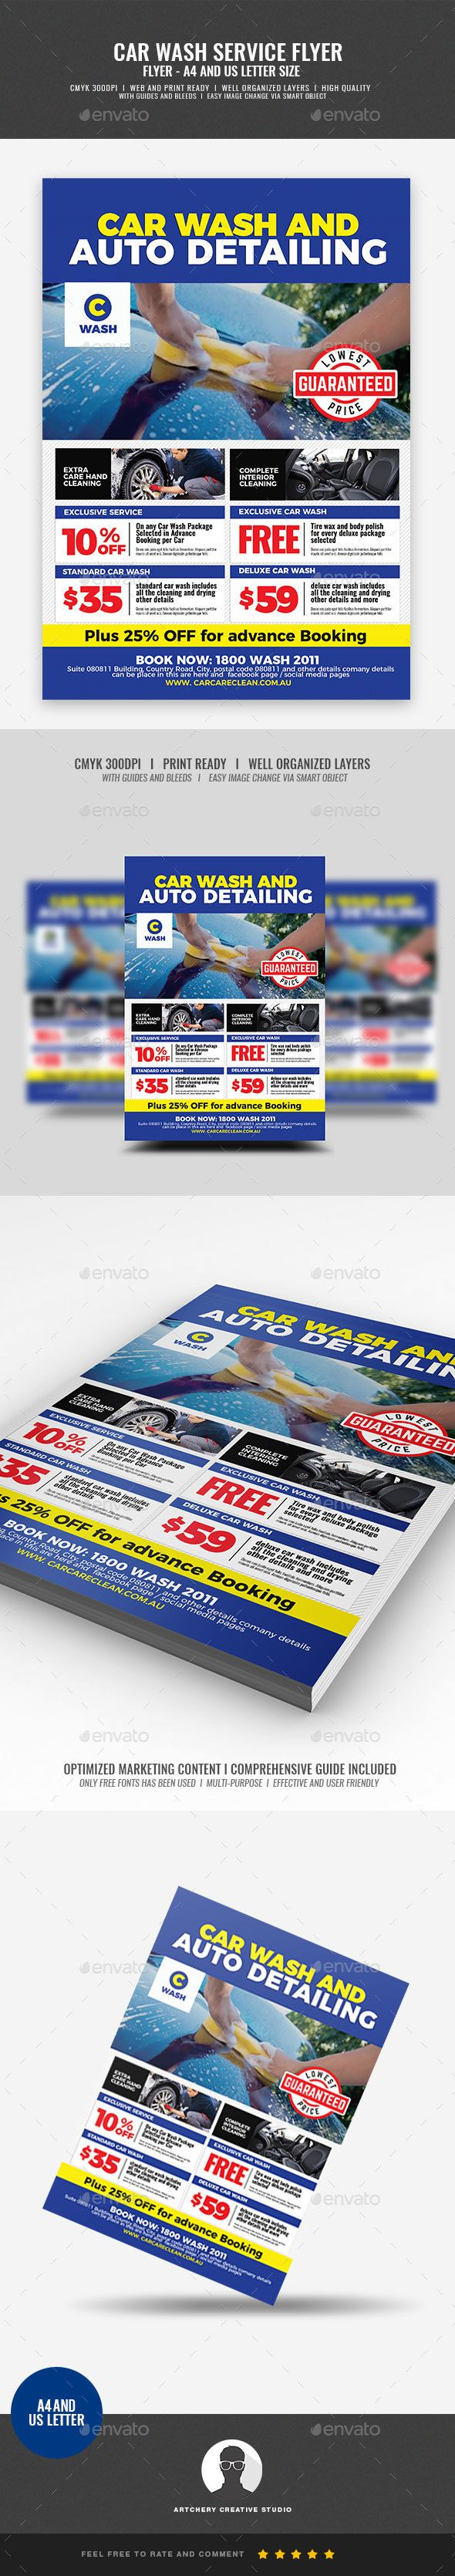 Car Wash and Auto Detailing Flyer - Corporate Flyers